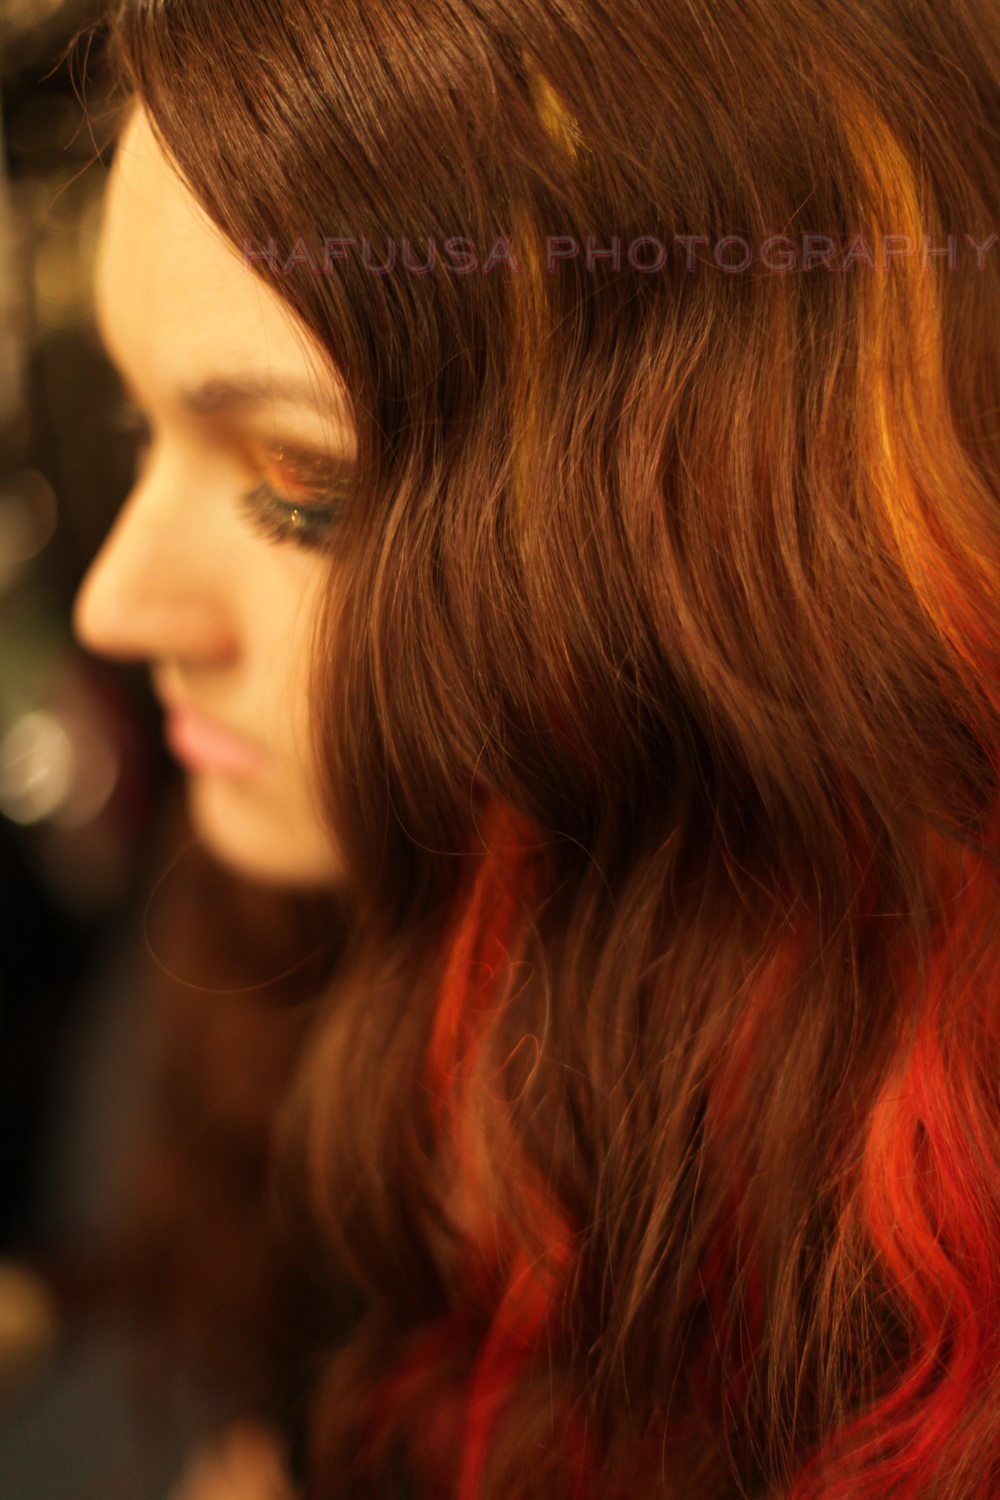 Curled Fire Hair Backstage.jpg